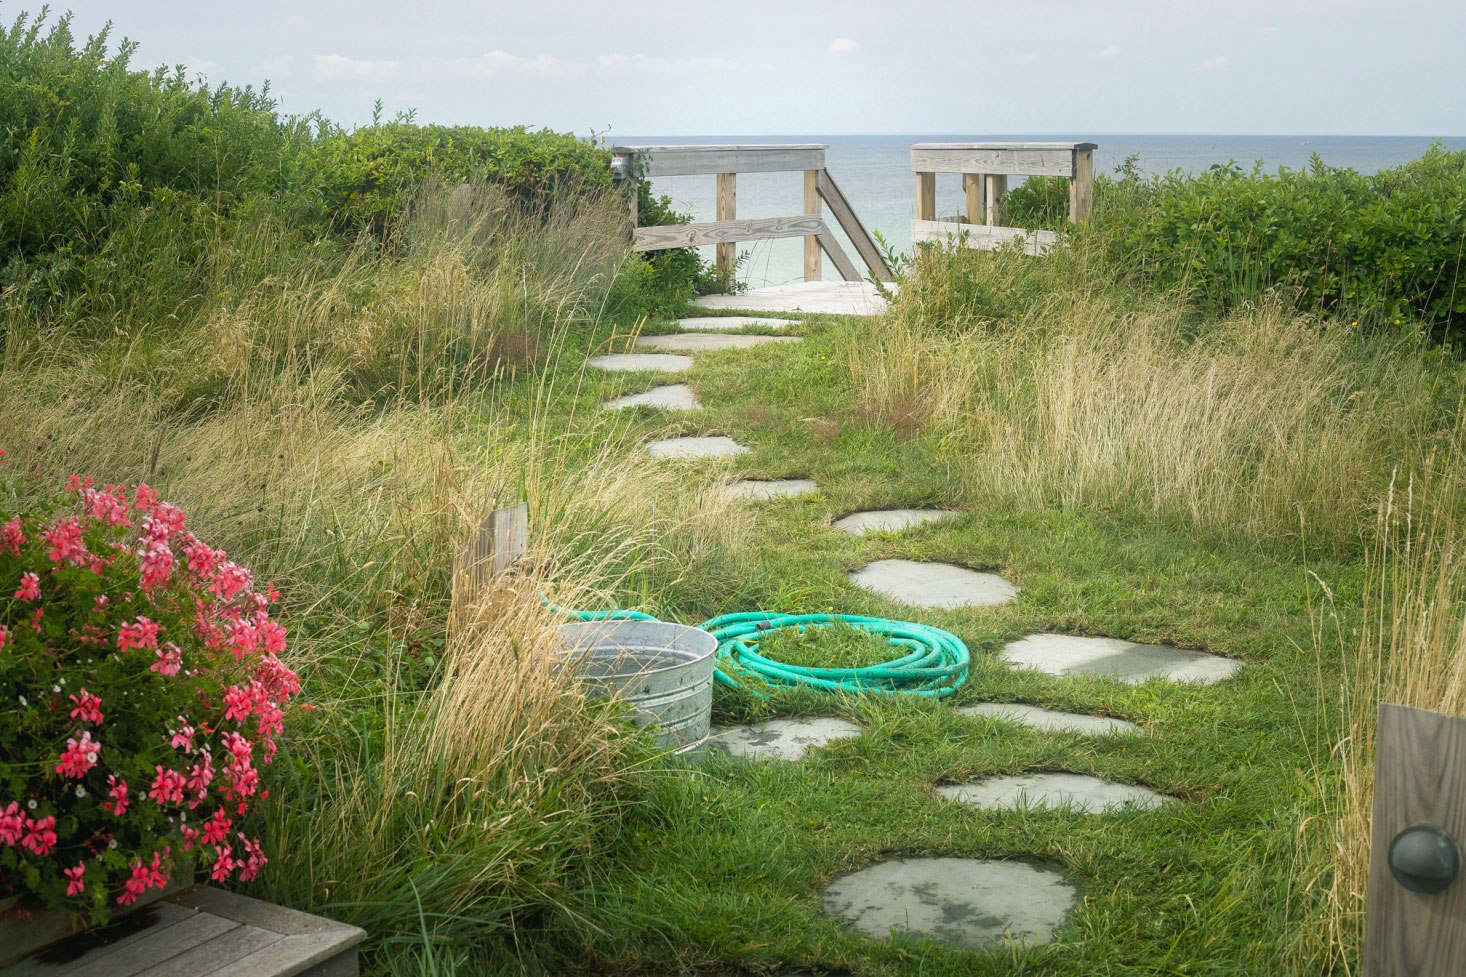 At Merryfield Cottage in Truro, Massachusetts, owners Steve Corkin and Dan Maddalena installed a convenient rinsing station, including hose and water-filled bucket, beside the beach path. See Tales from Truro: An Untamed Landscape Channels Thoreau's Cape Cod.